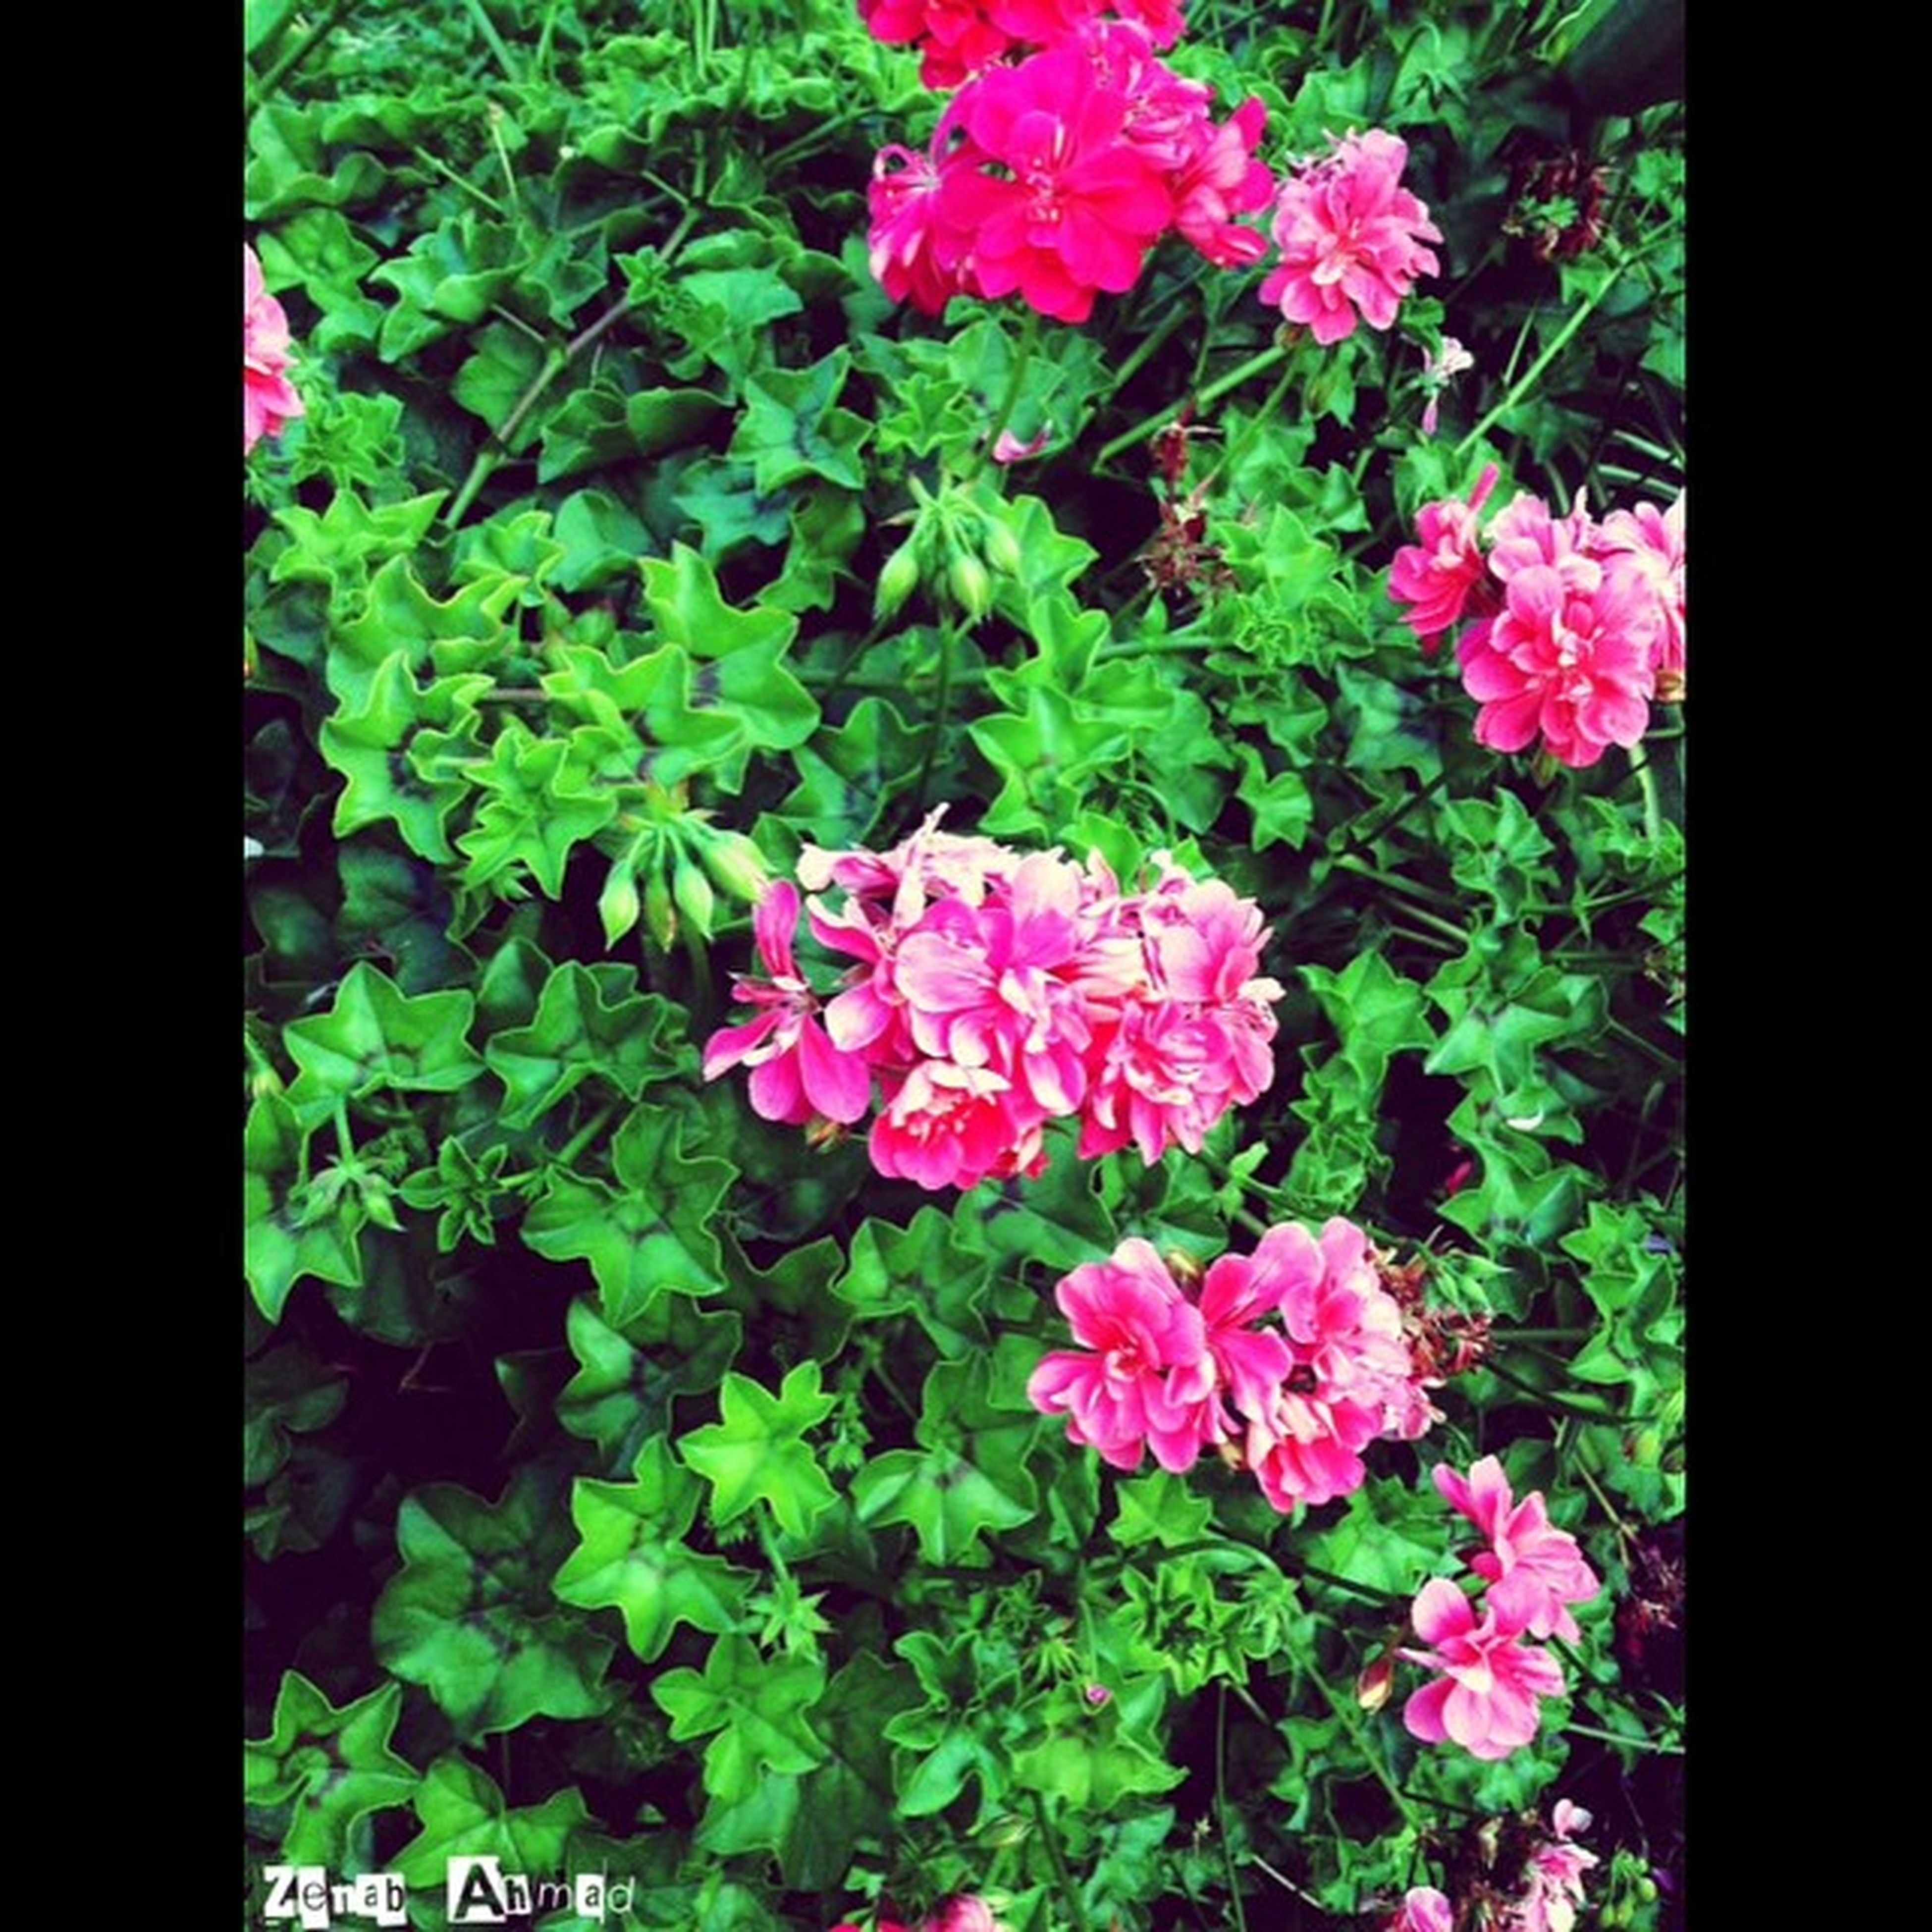 flower, growth, freshness, leaf, fragility, beauty in nature, plant, petal, green color, nature, red, pink color, transfer print, blooming, flower head, in bloom, blossom, close-up, botany, auto post production filter